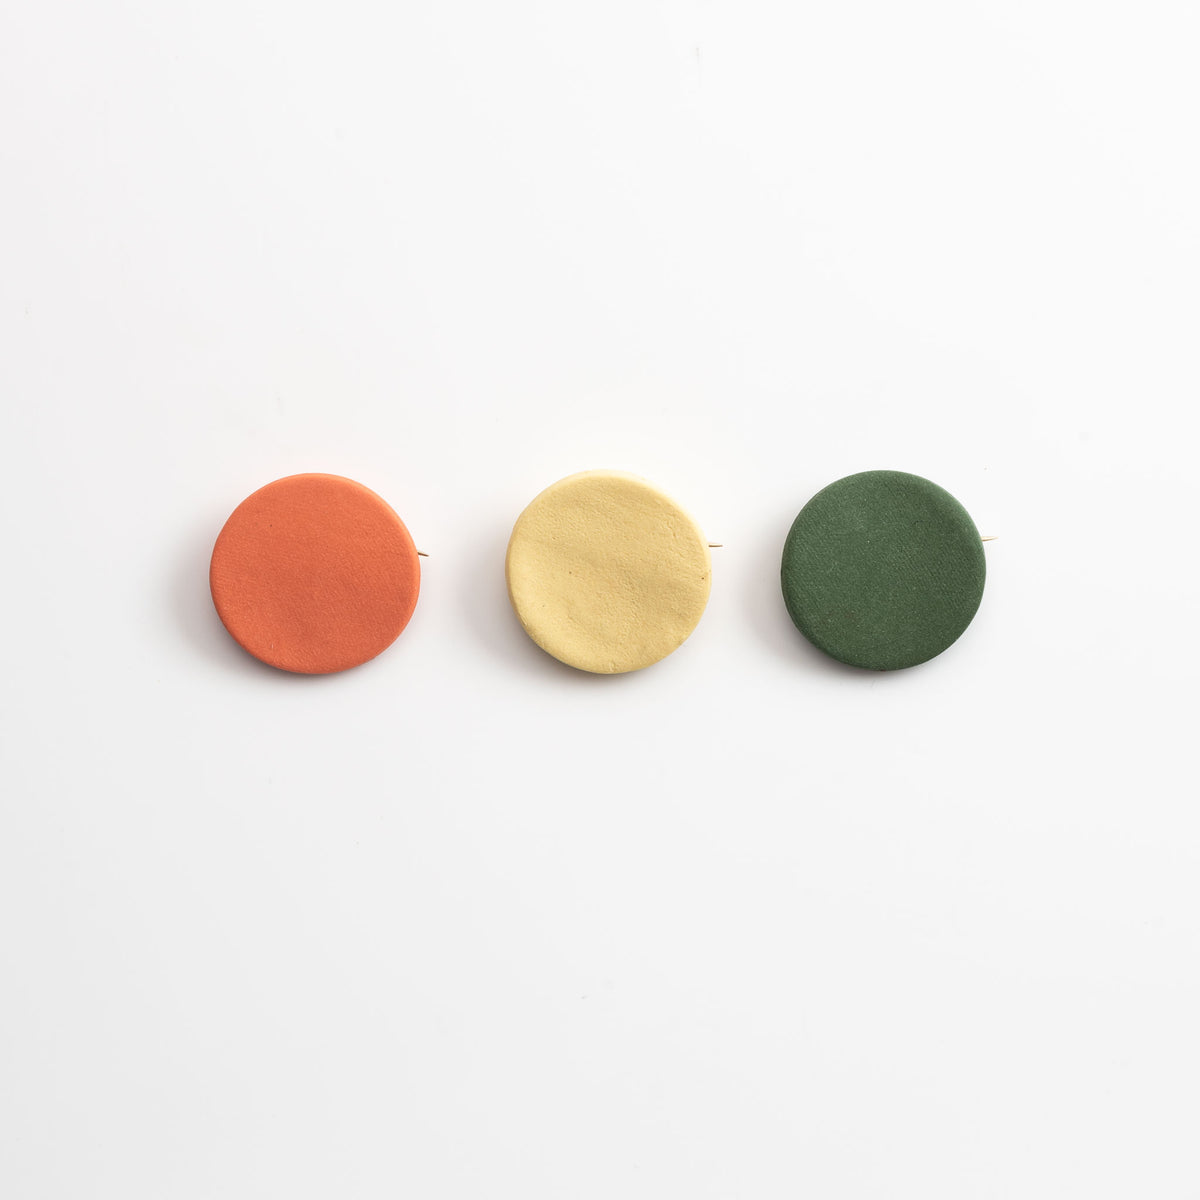 COVID 19 PINS set of 3 orange, yellow and dark green